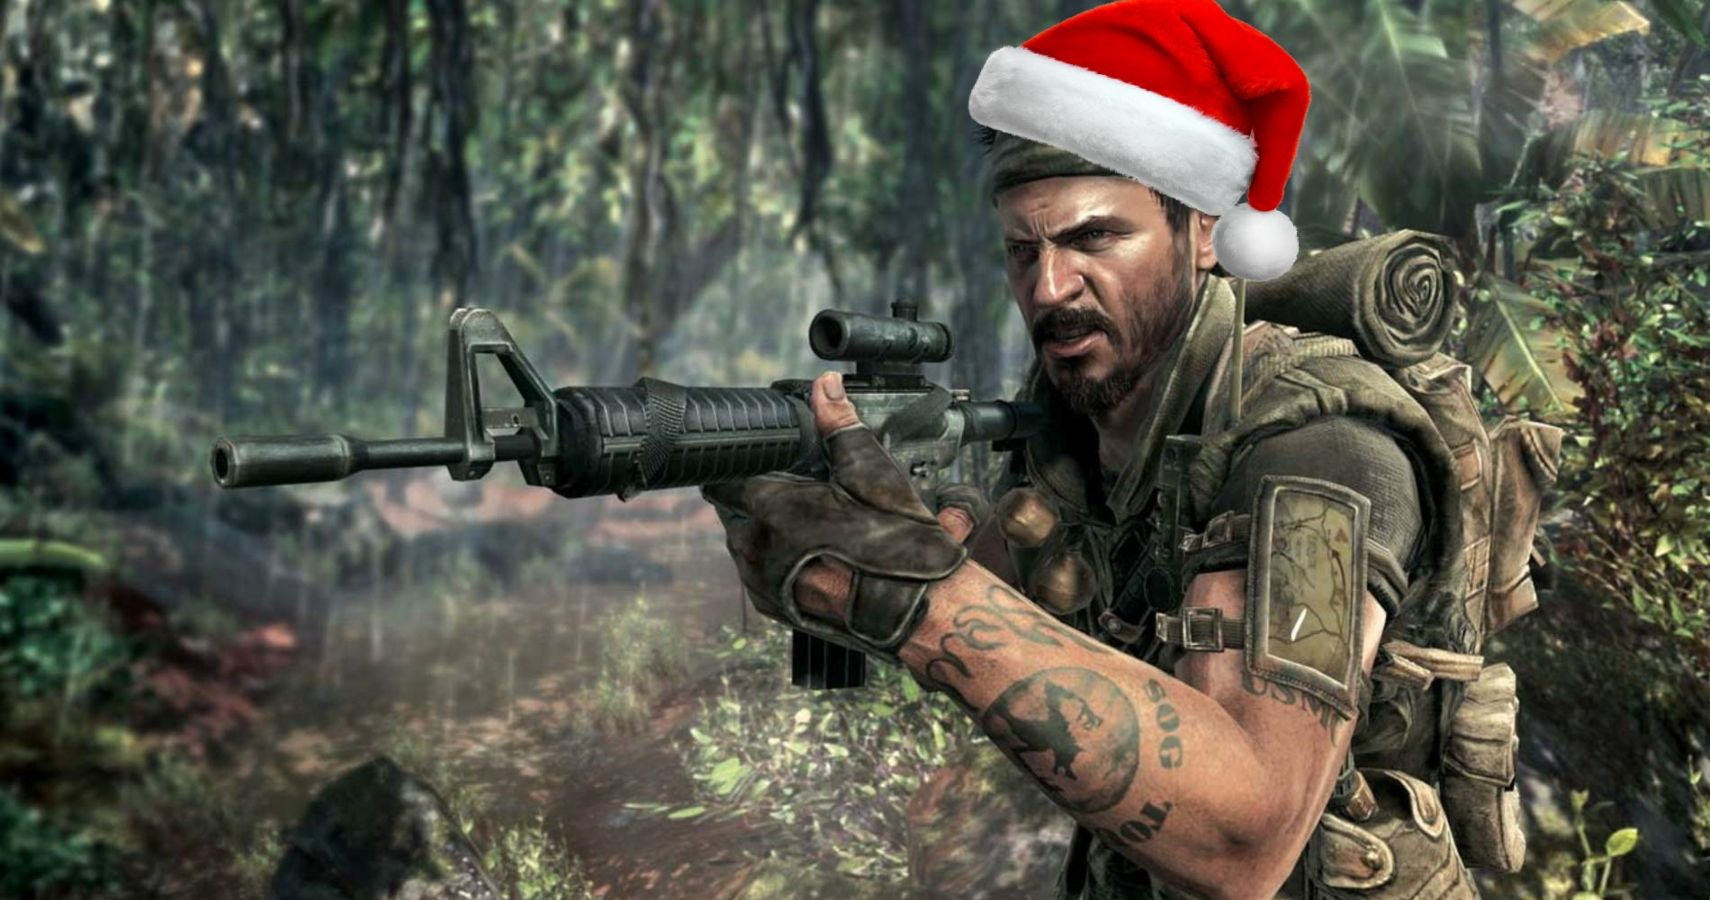 Celebrate The Holidays In Call Of Duty With Free Holiday DLC